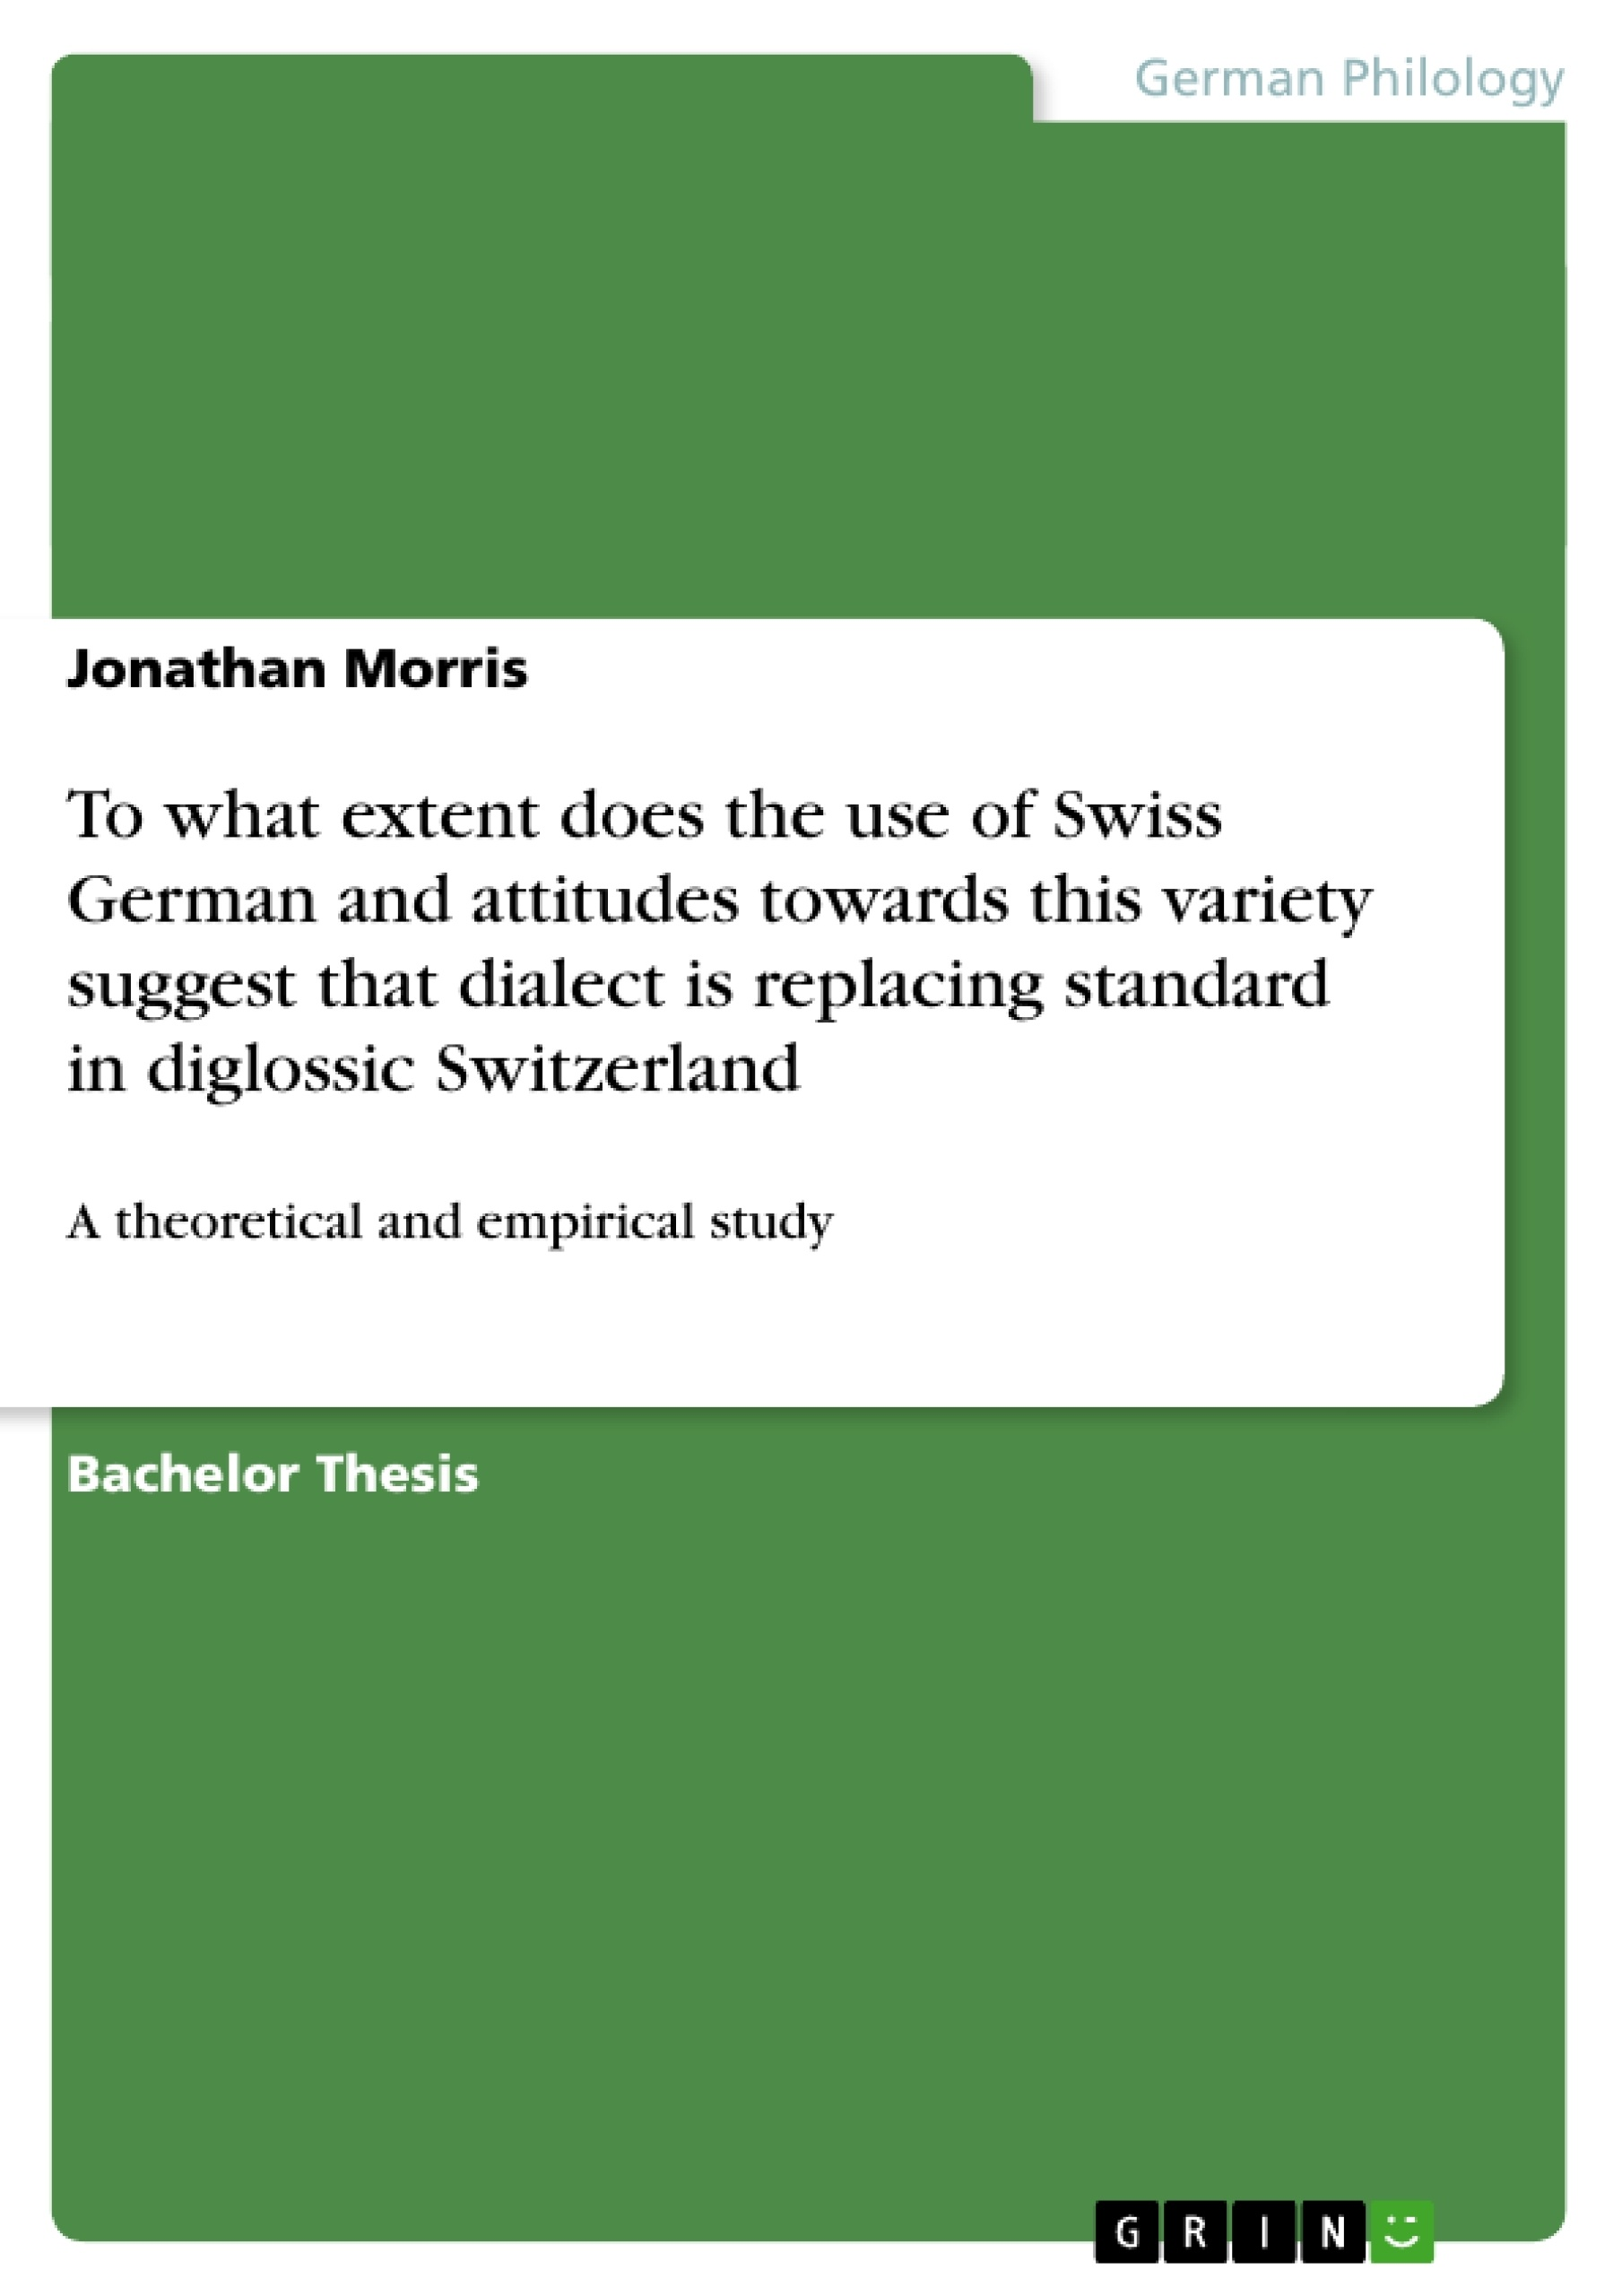 Bis Nachher Englisch Grin To What Extent Does The Use Of Swiss German And Attitudes Towards This Variety Suggest That Dialect Is Replacing Standard In Diglossic